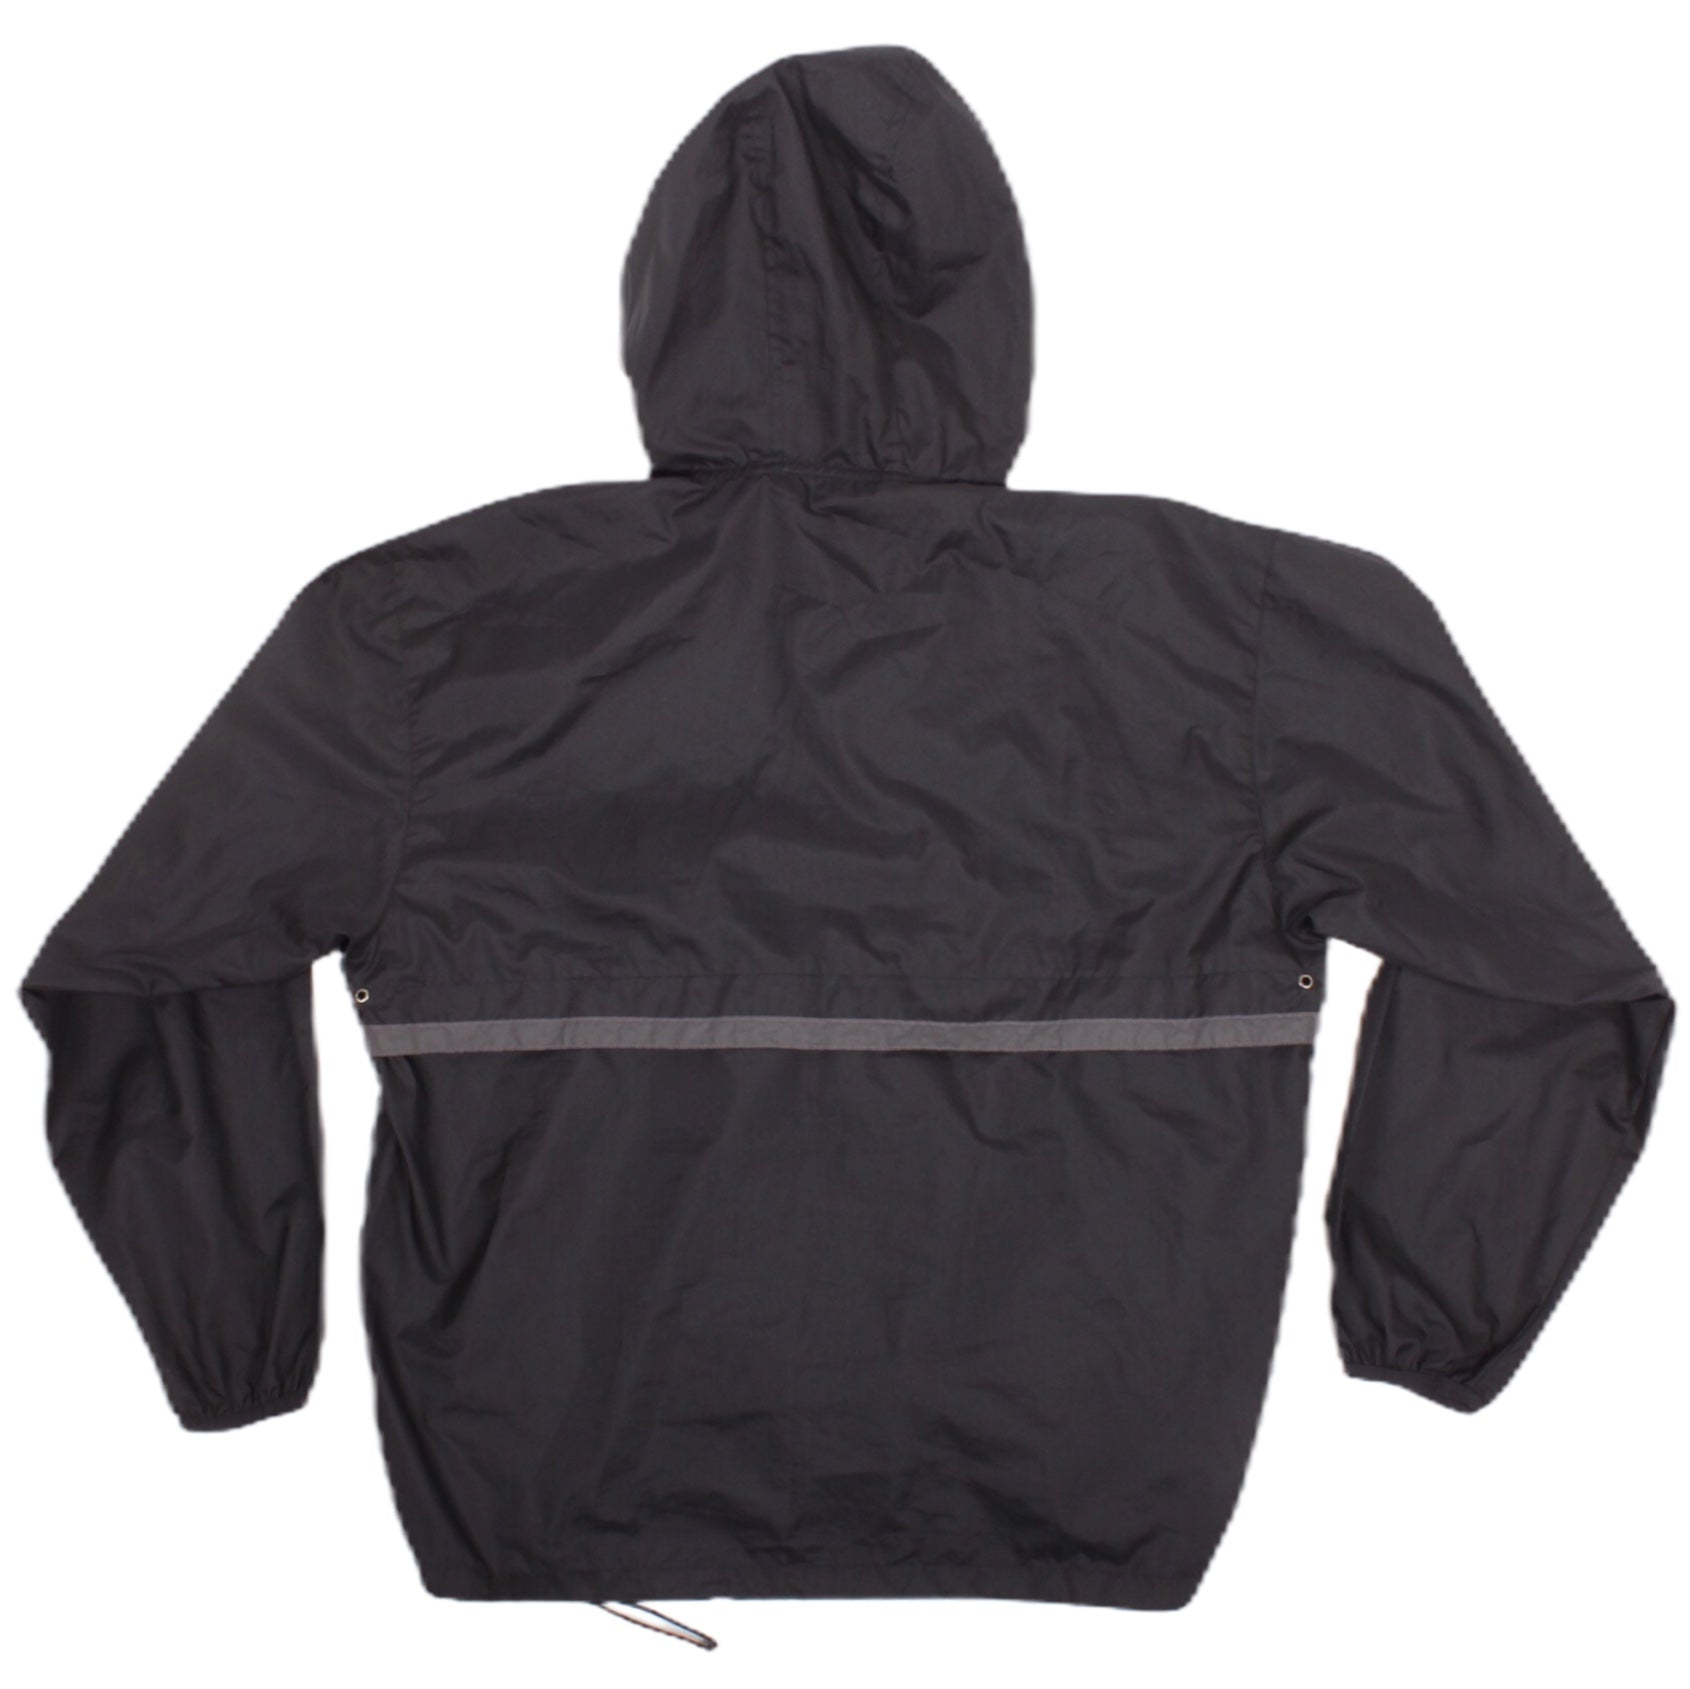 Overripe XYZ Tech Windbreaker Black (1996)